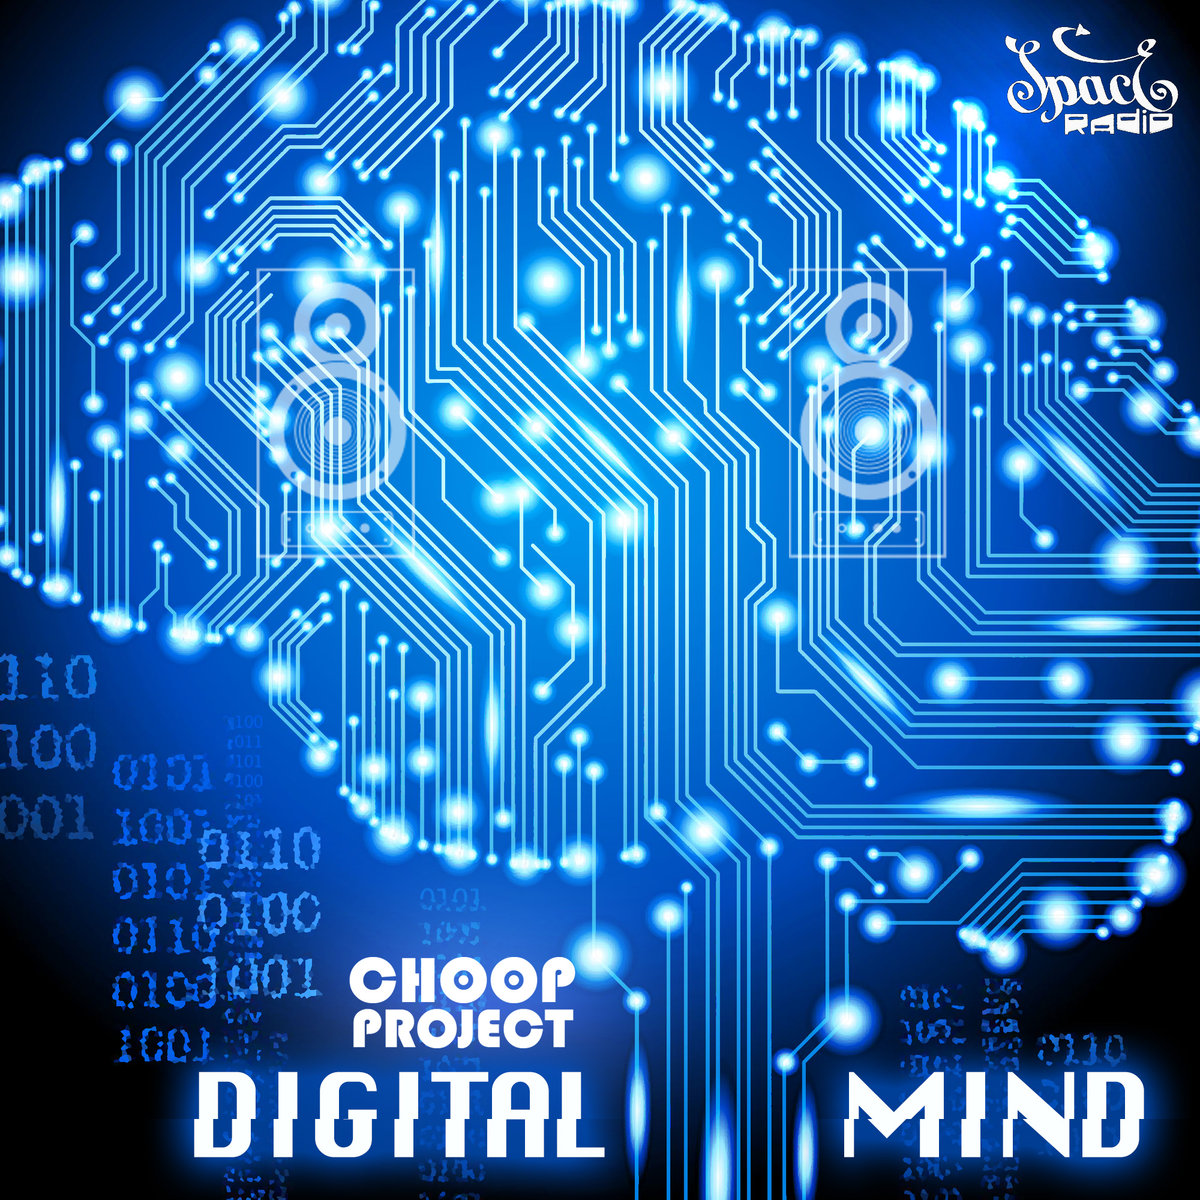 Choop Project - Digital Mind